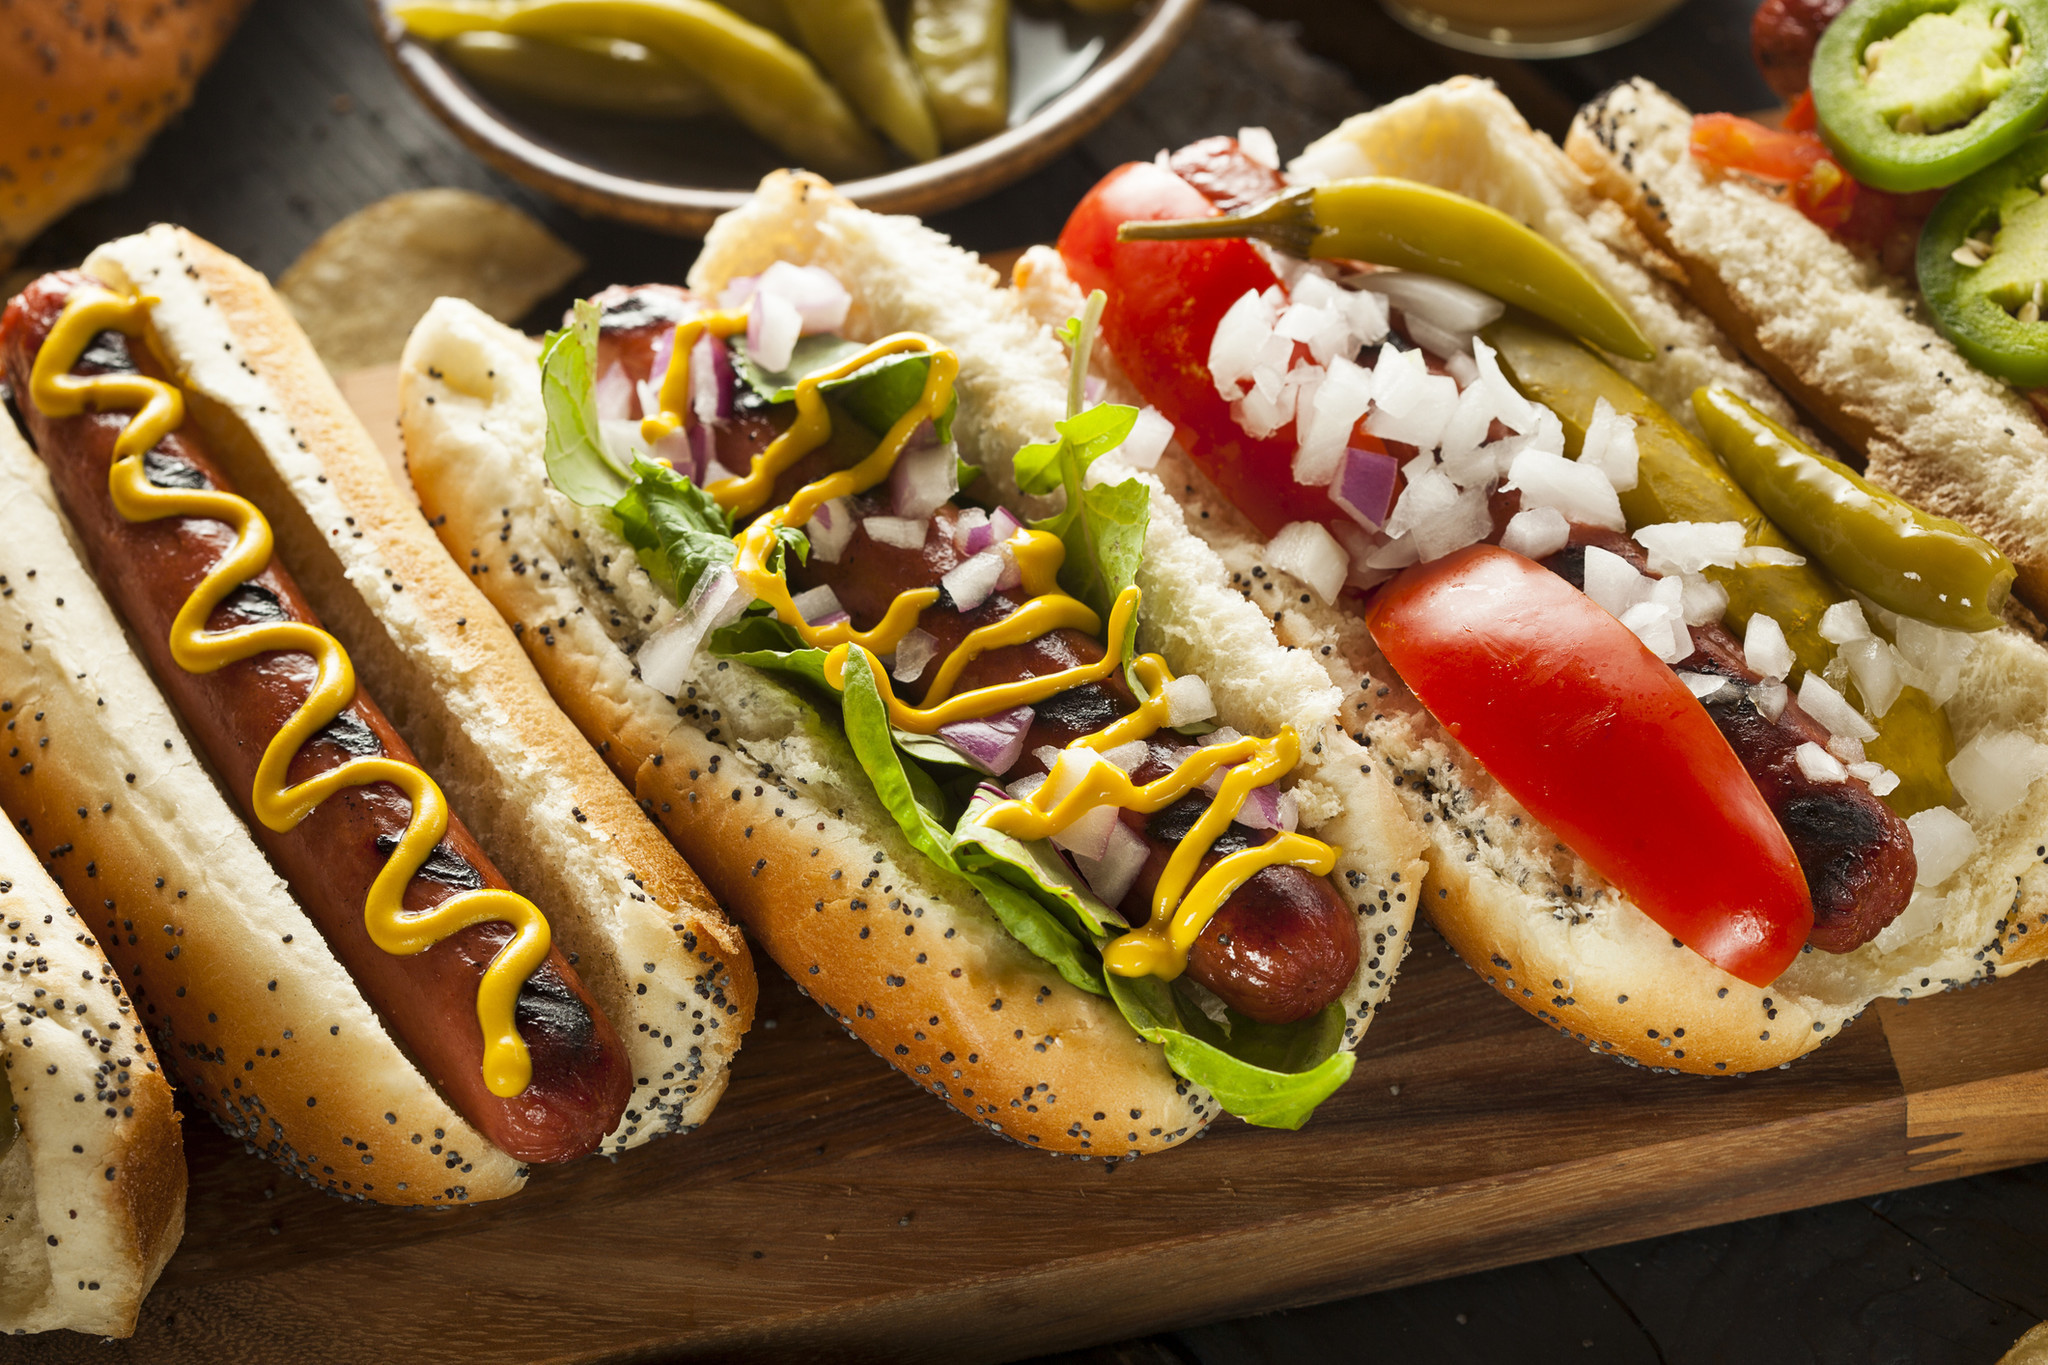 National Hot Dog Day 5 Deals And Fun Facts To Celebrate Wieners On Wednesday Sun Sentinel